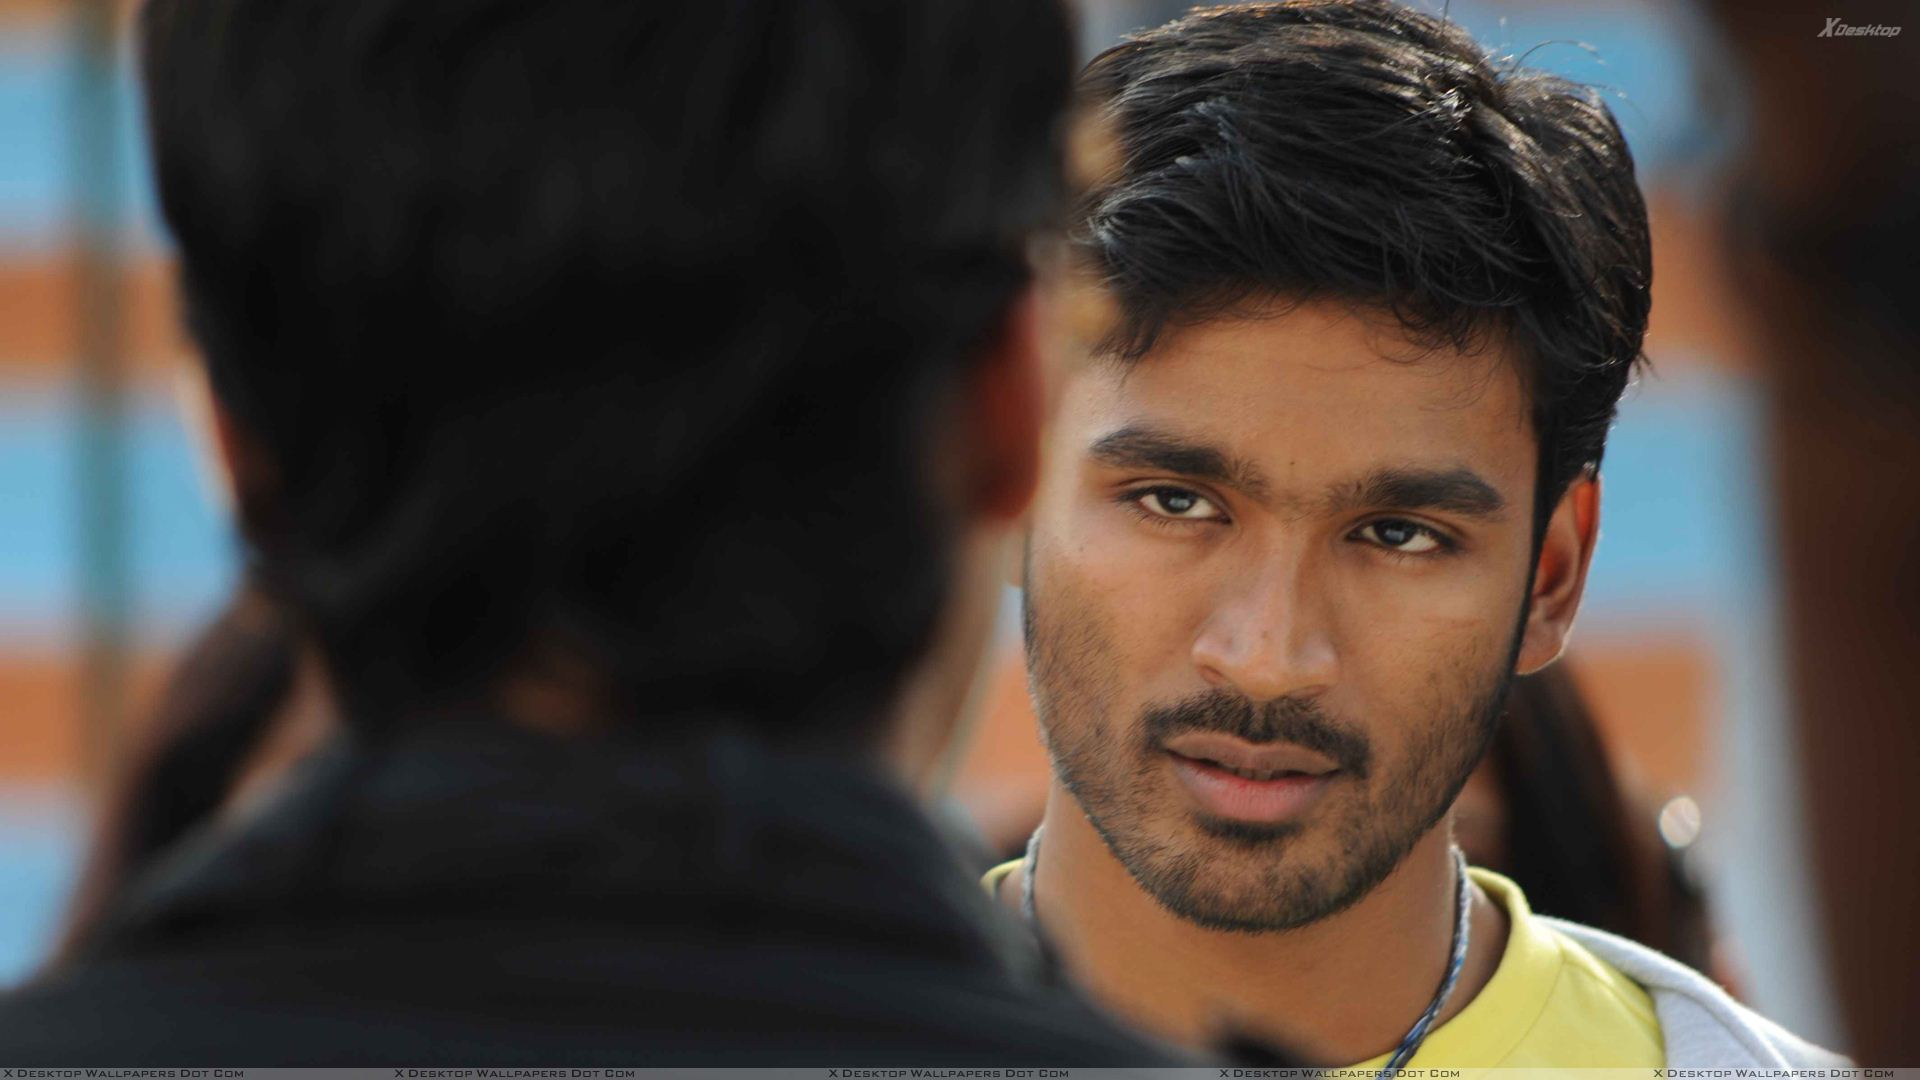 dhanush wallpapers, photos & images in hd